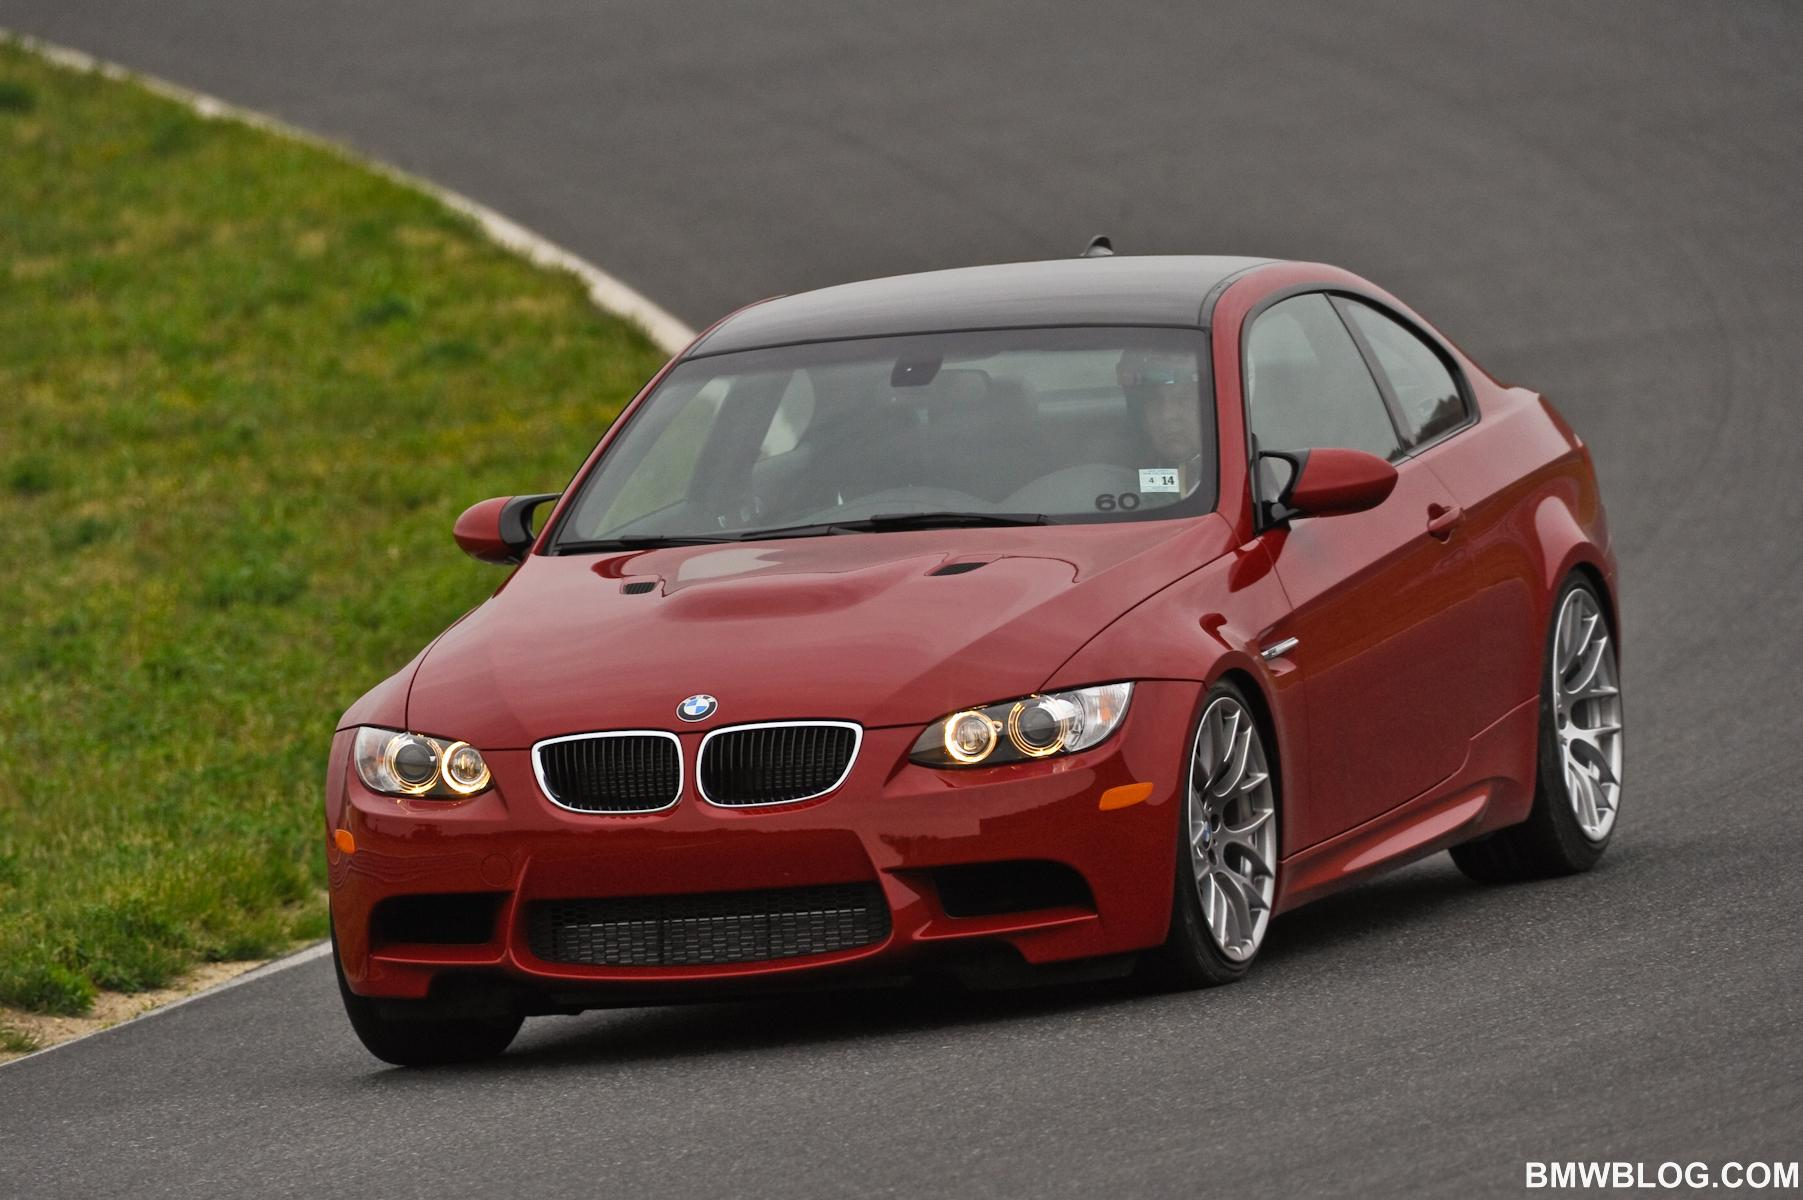 BMWBLOG On-Track Comparison: M3 vs 335iS - BMW's Sibling Rivalry